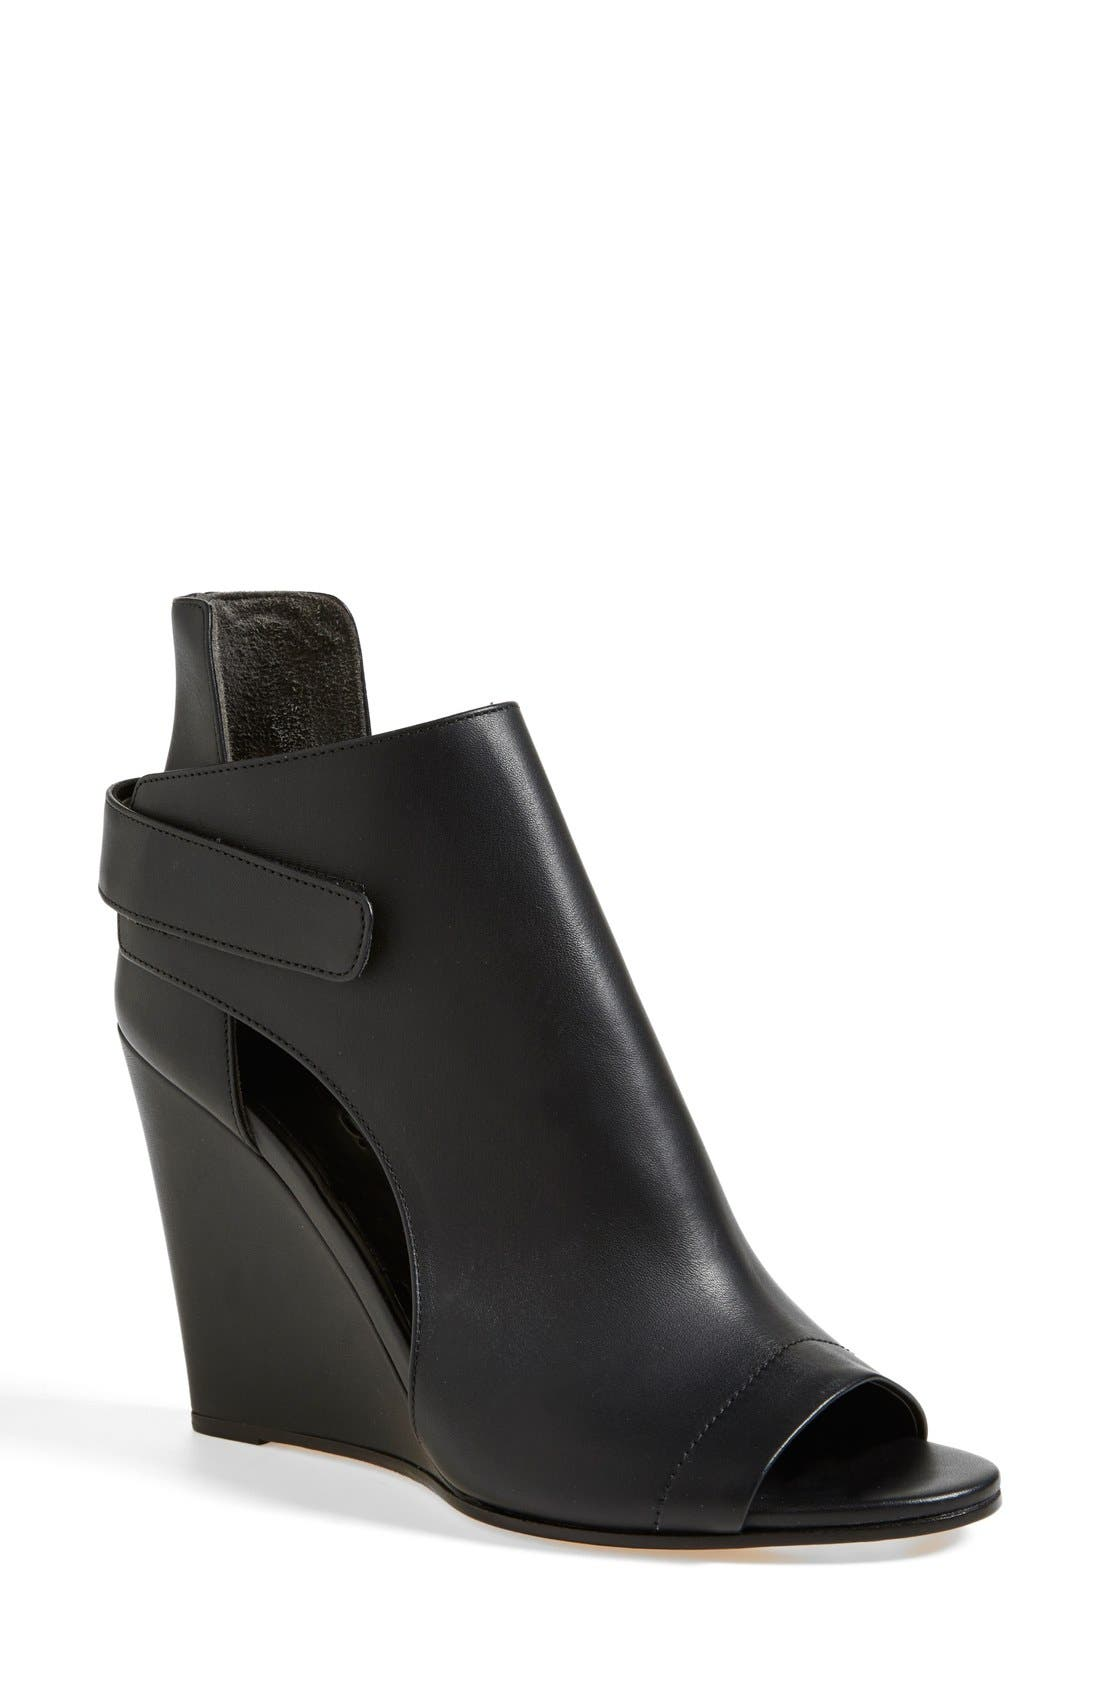 'Katia' Leather Wedge Bootie,                             Main thumbnail 1, color,                             001